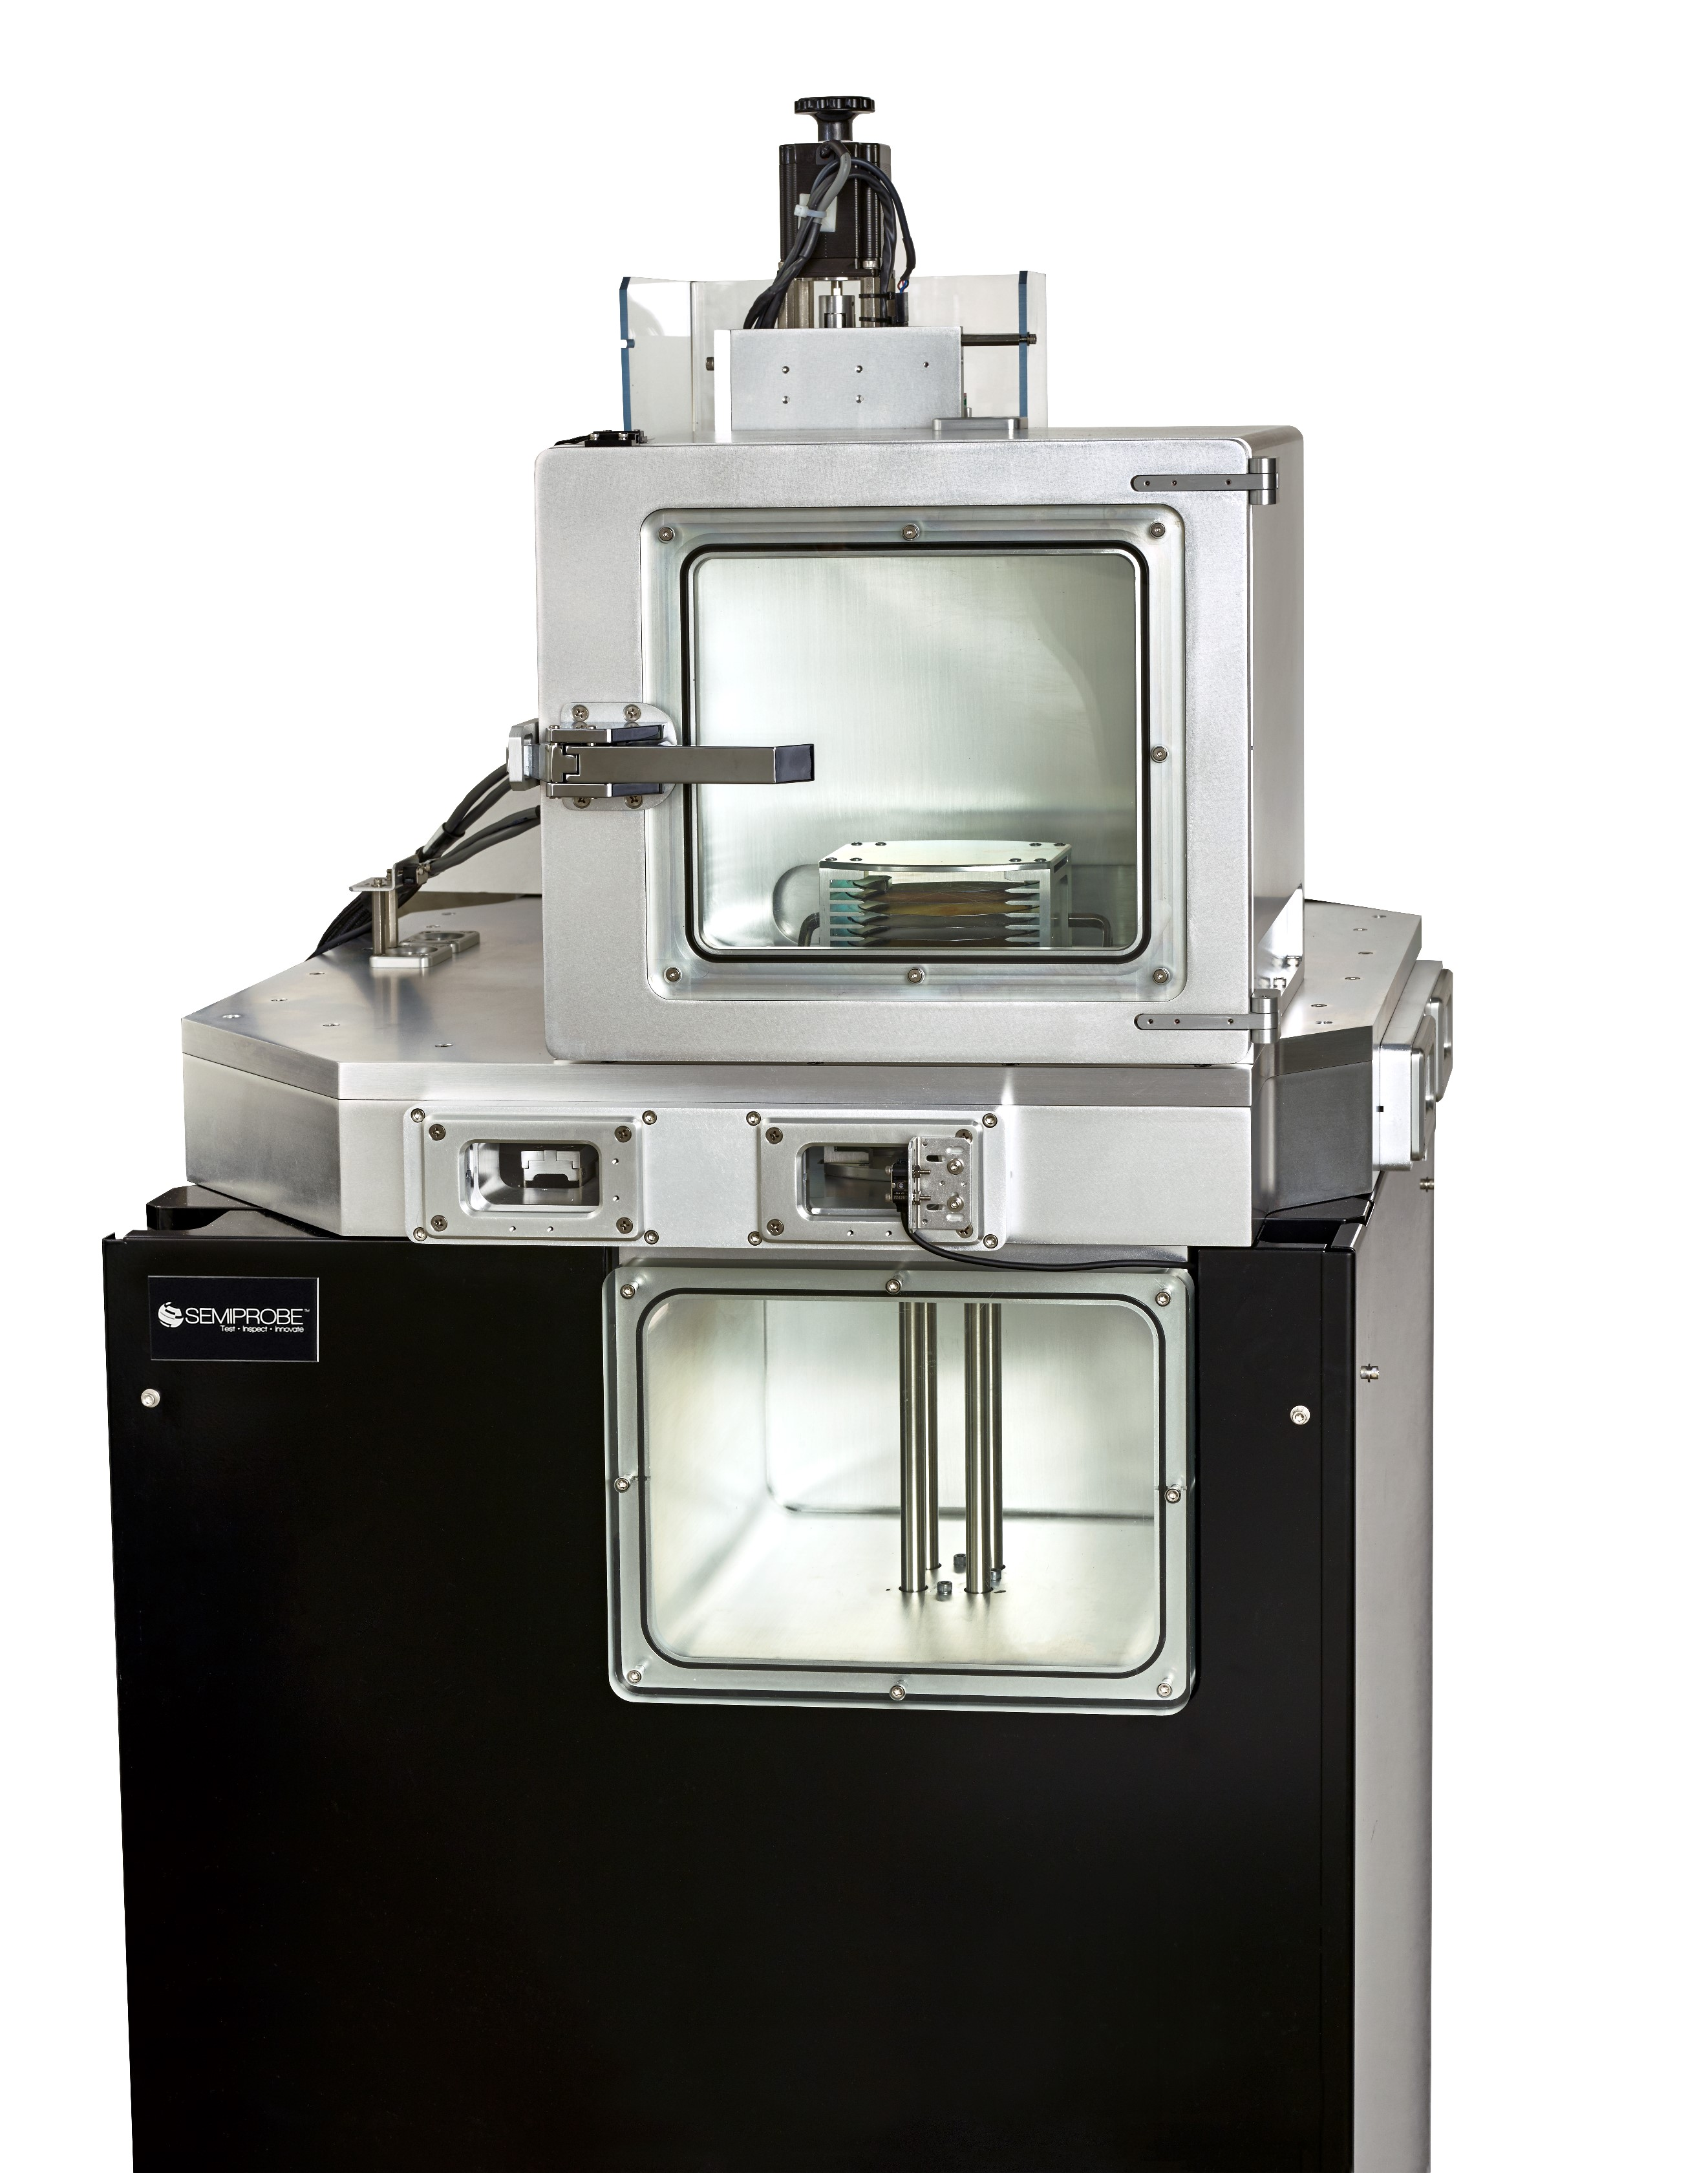 Fully Automatic Wafer Prober - MEMS